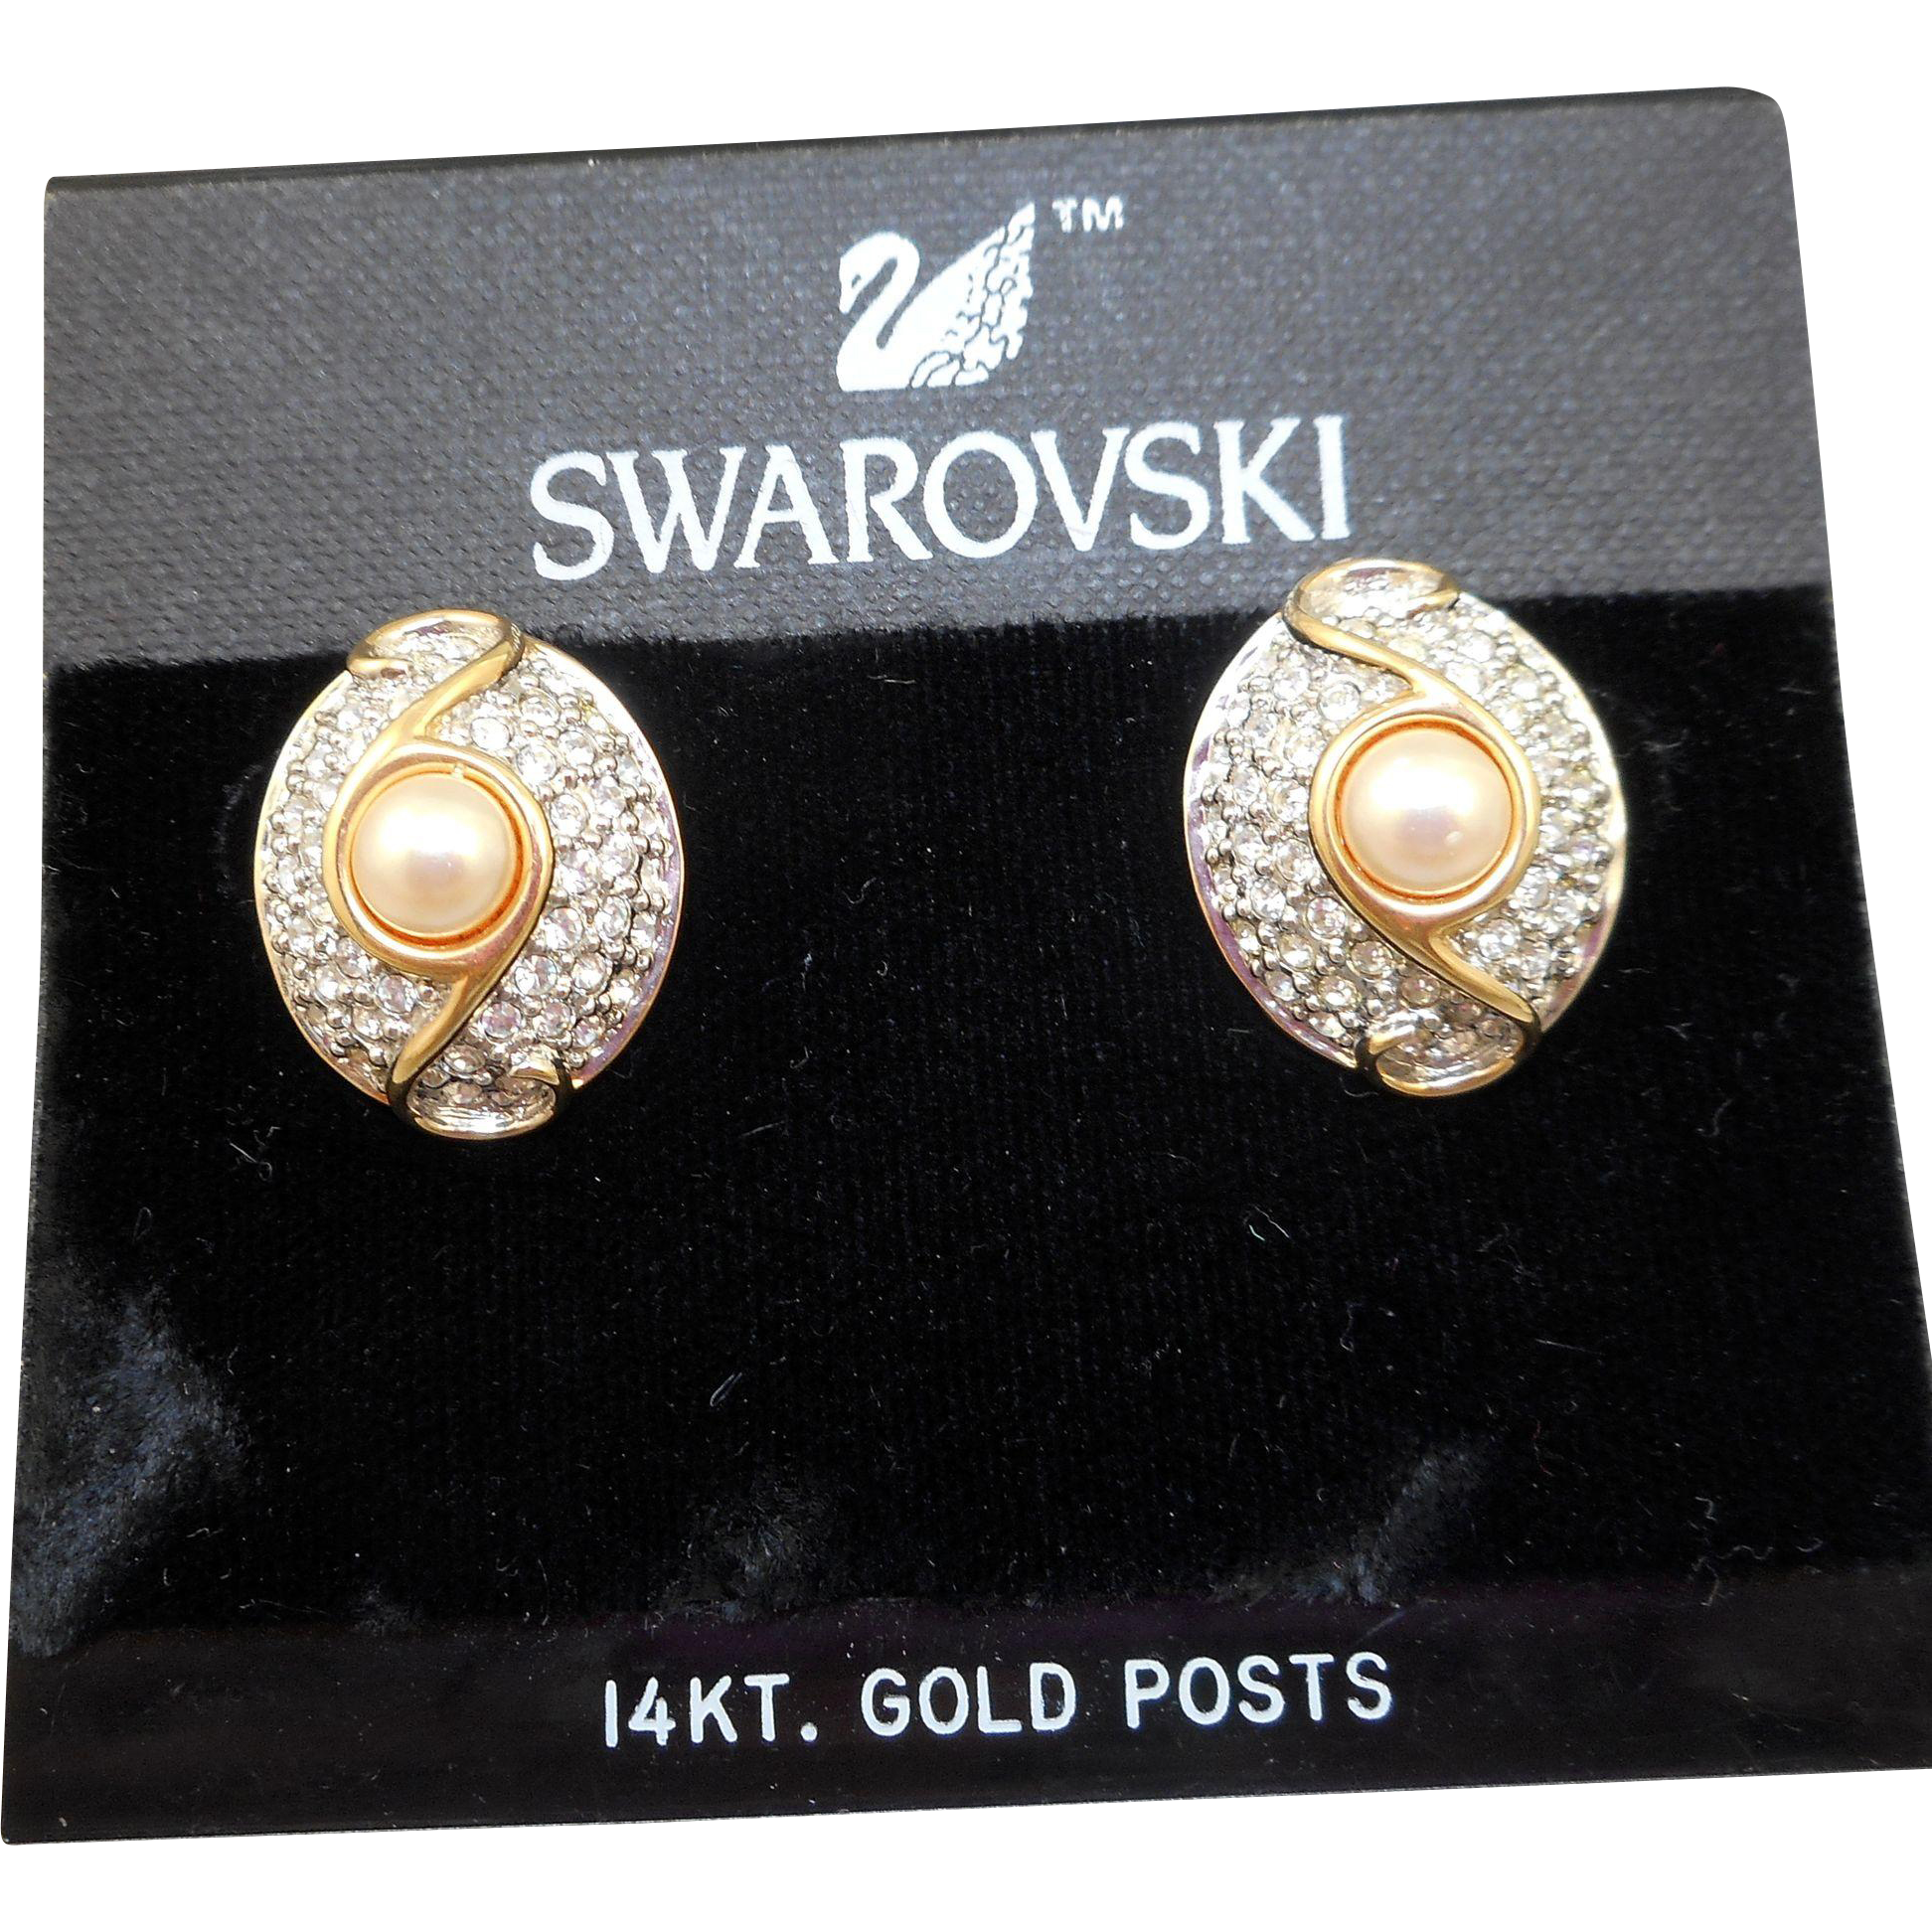 NOS Swarovski Rhinestone Pearl Earrings - MOC